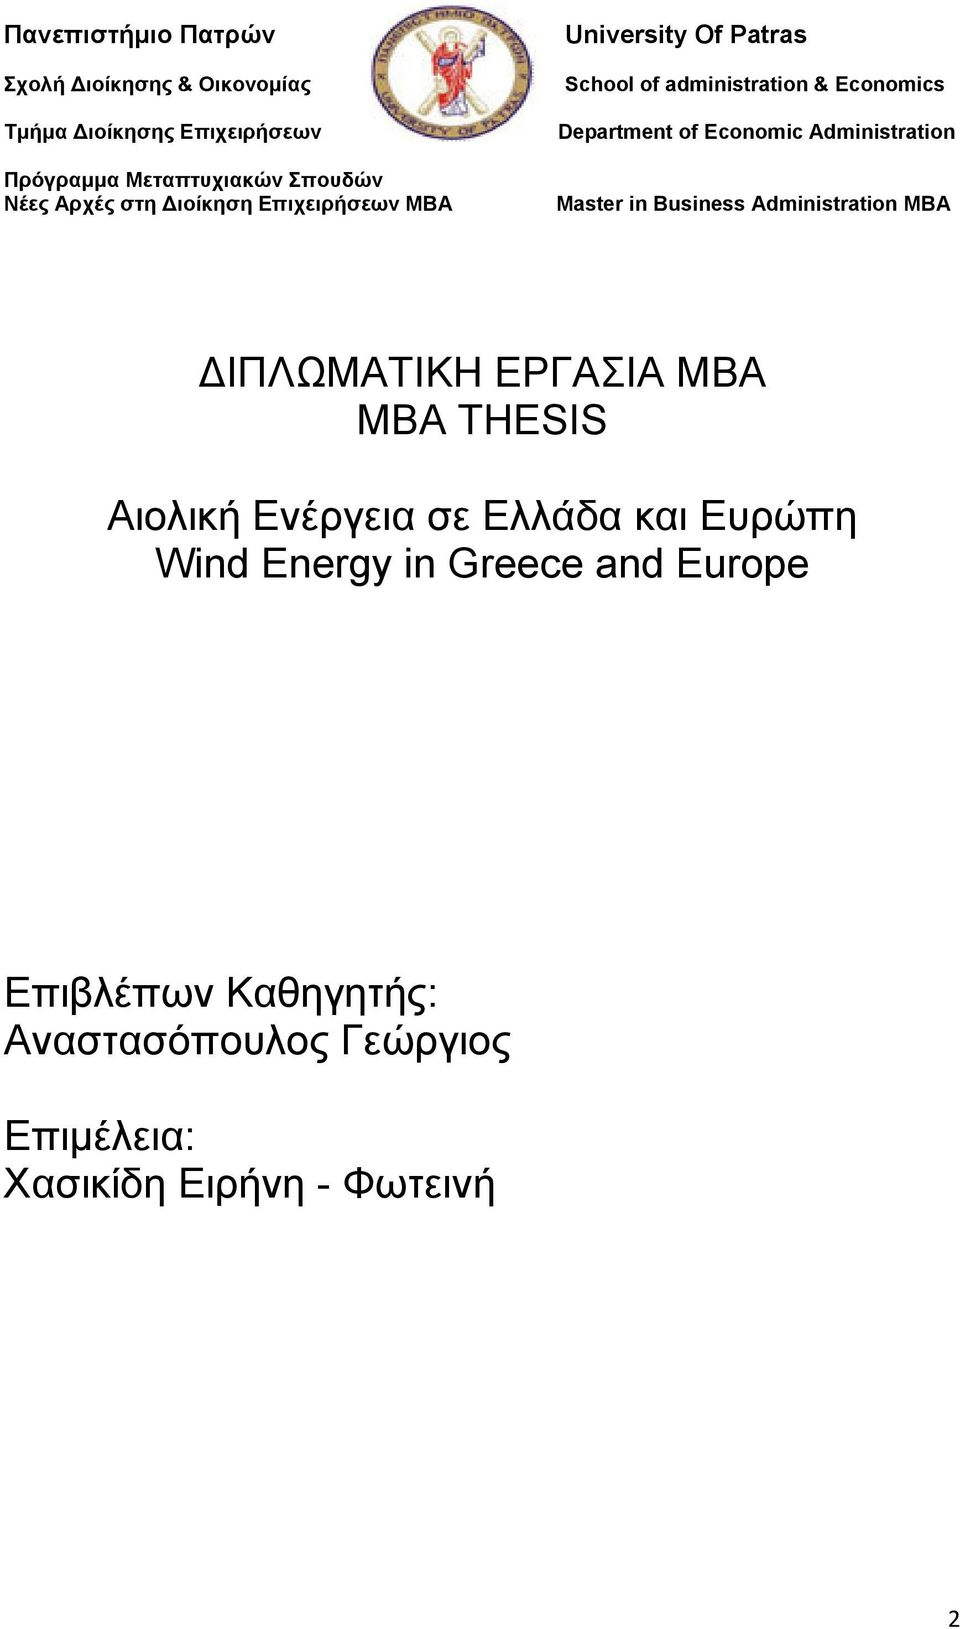 Administration Master in Business Administration MBA ΙΠΛΩΜΑΤΙΚΗ ΕΡΓΑΣΙΑ MBA MBA THESIS Αιολική Ενέργεια σε Ελλάδα και